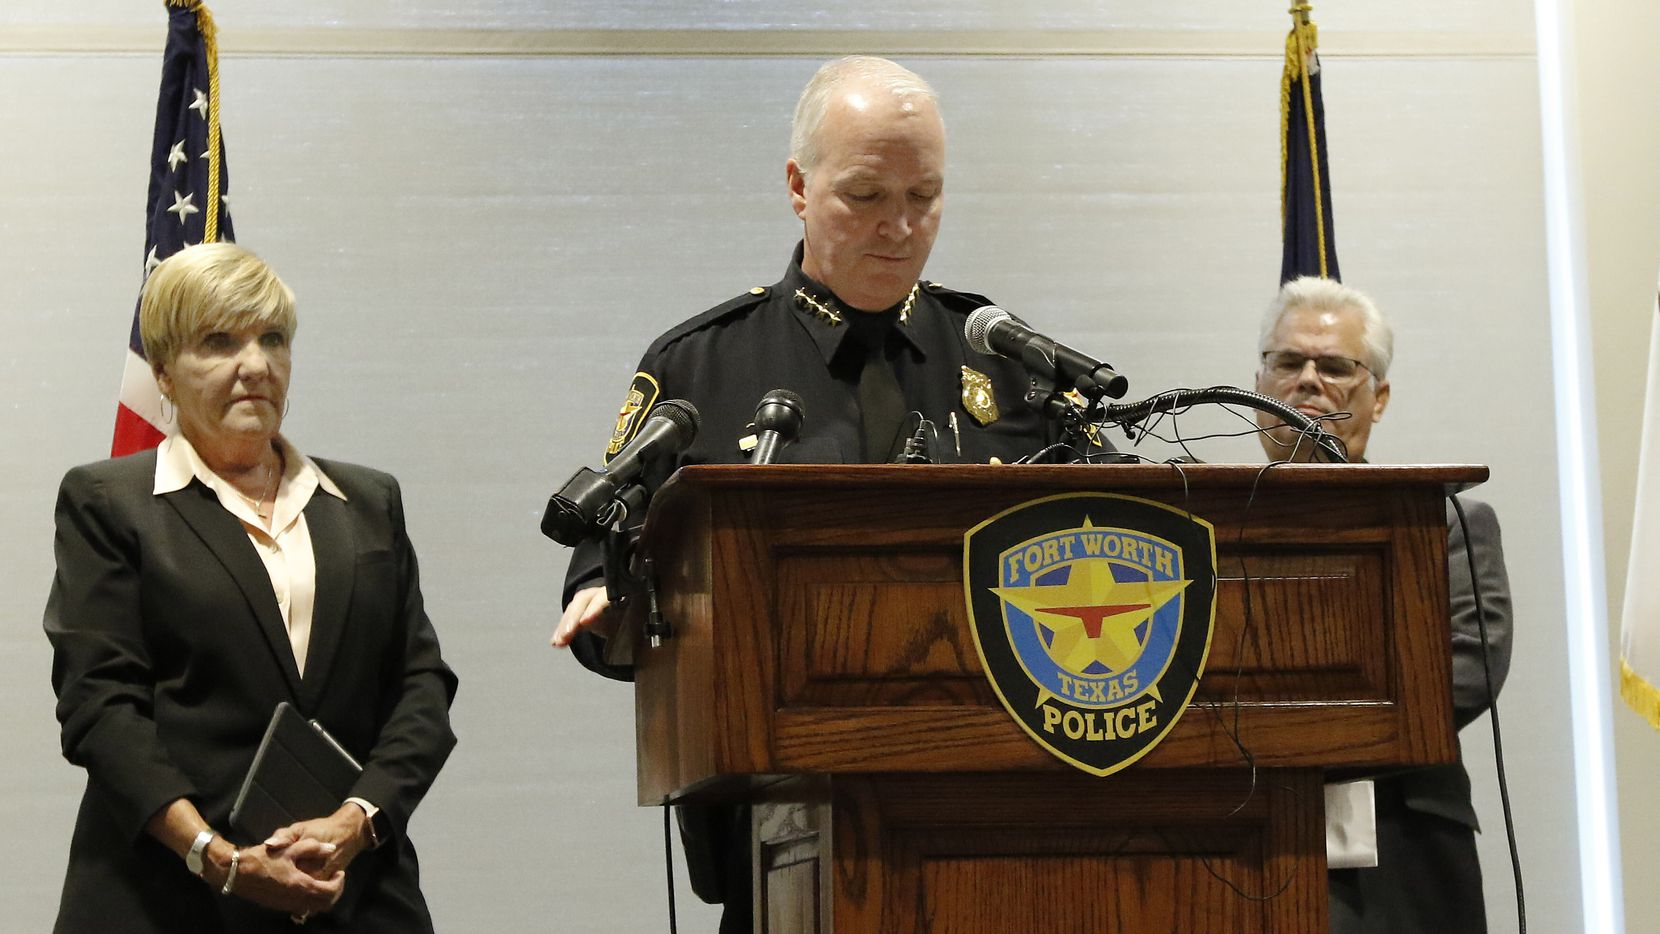 Fort Worth Mayor Betsy Price (left) listens as then-Interim Police Chief Ed Kraus addressed the media about the Atatiana Jefferson shooting on Oct.14, 2019.